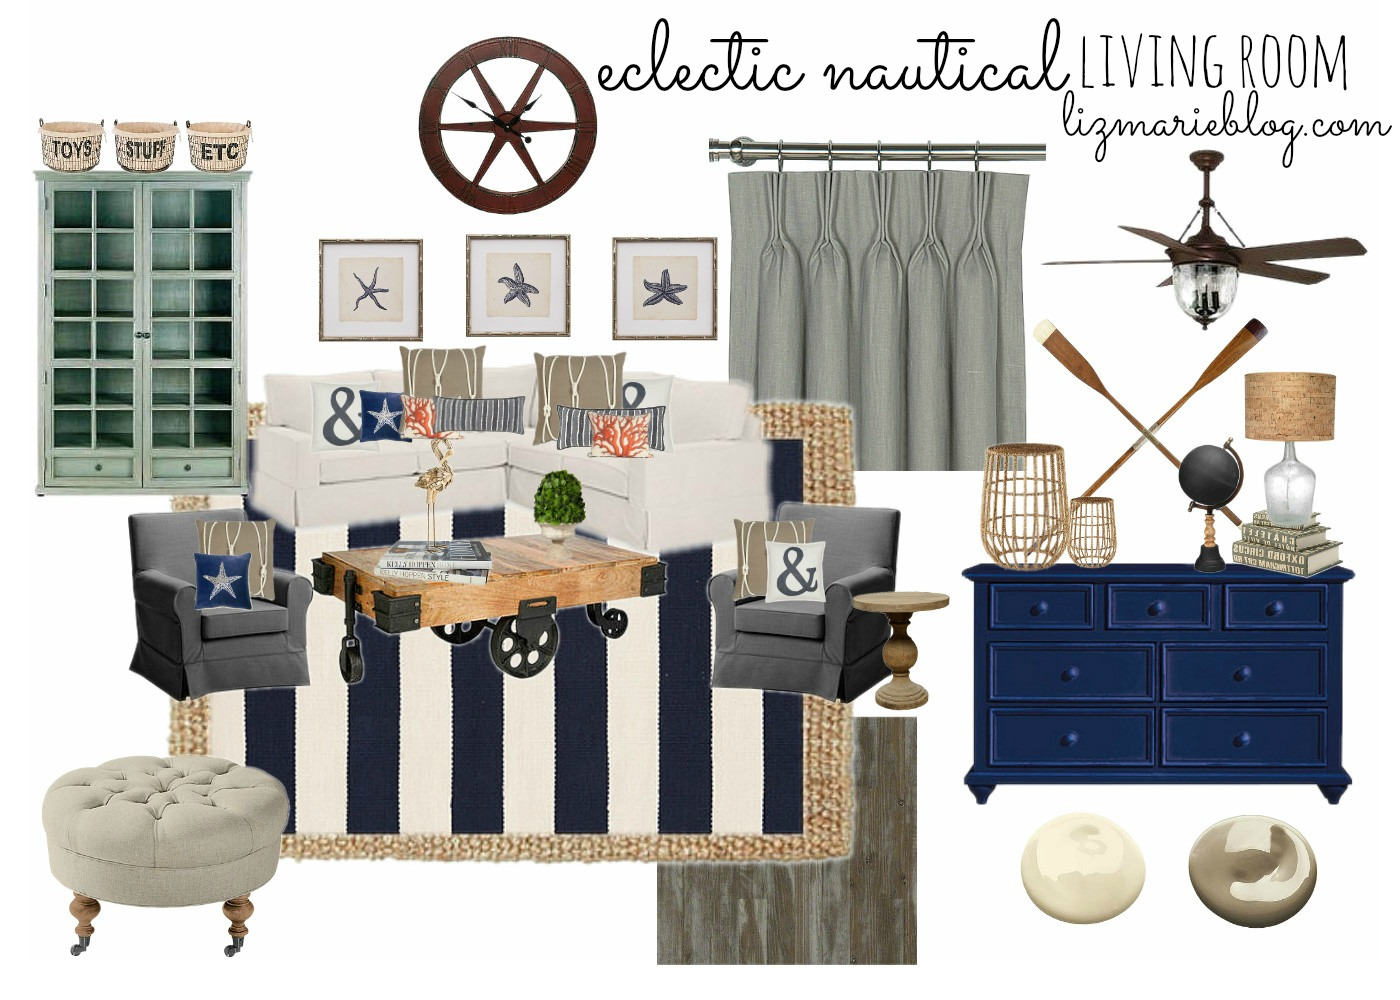 Eclectic Nautical Living Room Liz Marie Blog